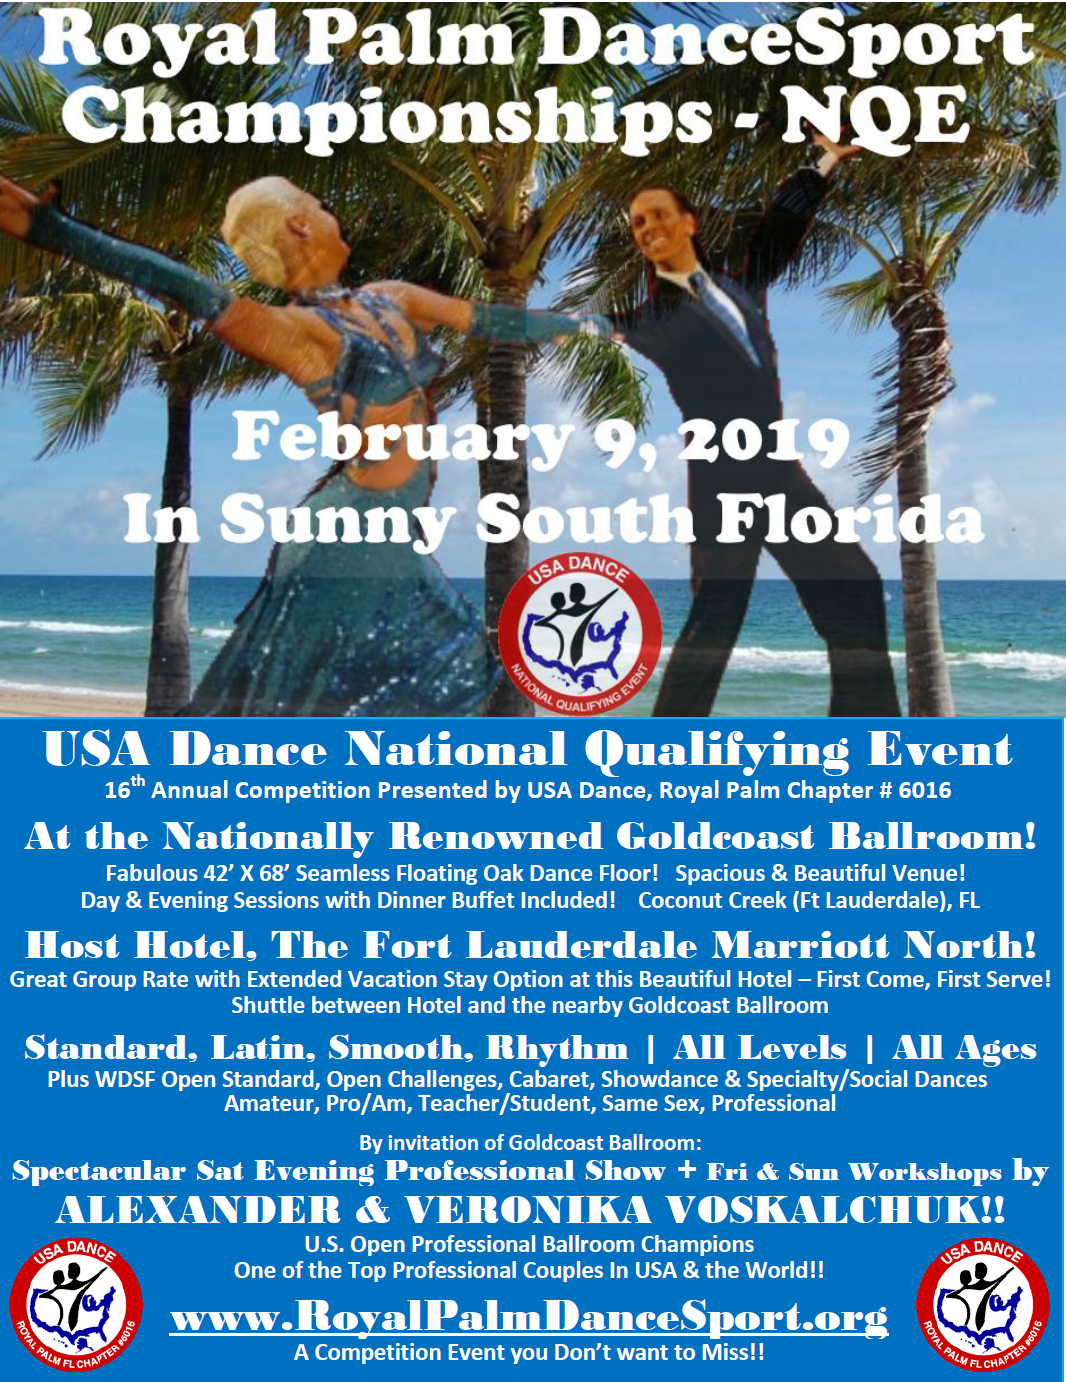 Royal Palm DanceSport Championships NQE and WDSF Open - February 9, 2019